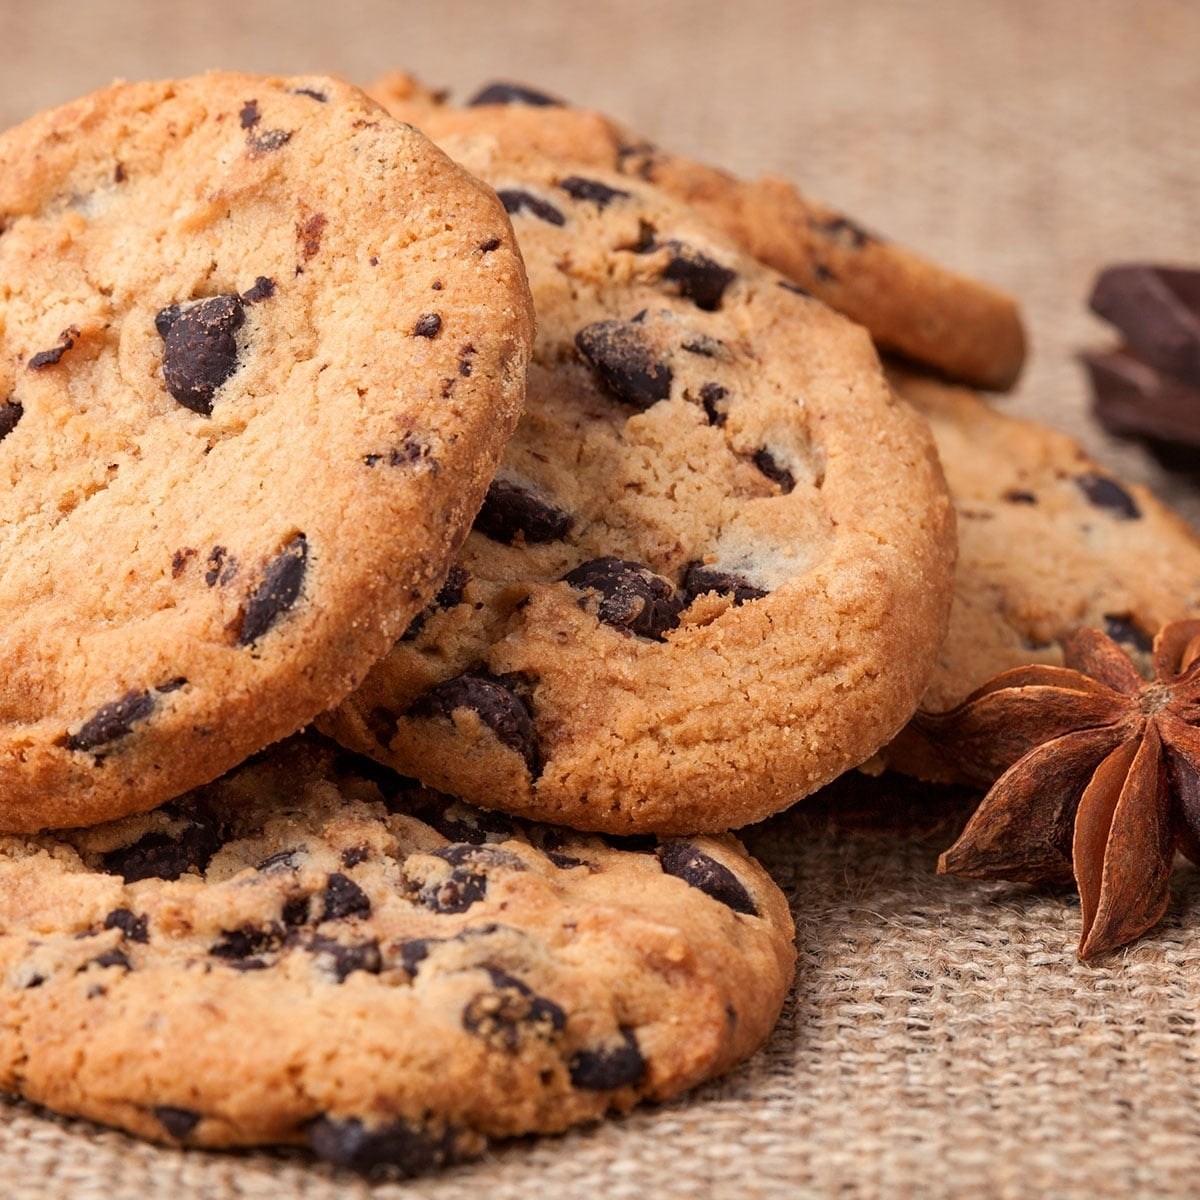 National Chocolate Chip Cookie Day - August 4, 2019 | National Today inside August National Food Day Calendar